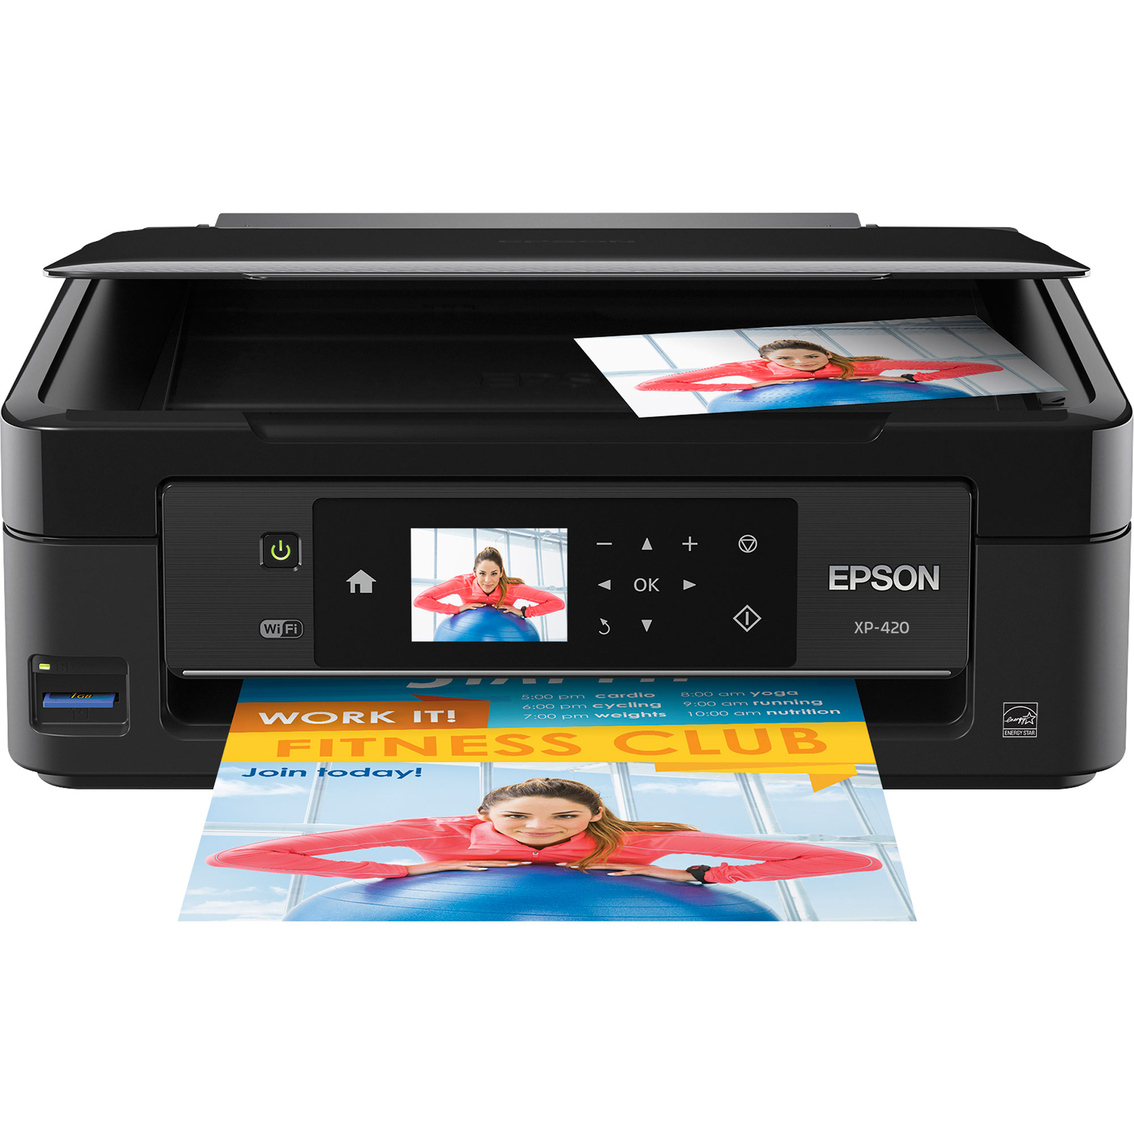 This is so compact it easily fits anywhere around the desk. But full of features. Print, fax, scan, copy, wireless etc.. The XP-420 also enables users to edit, scan and share photos directly to Facebook™ or other popular cloud services all in one...